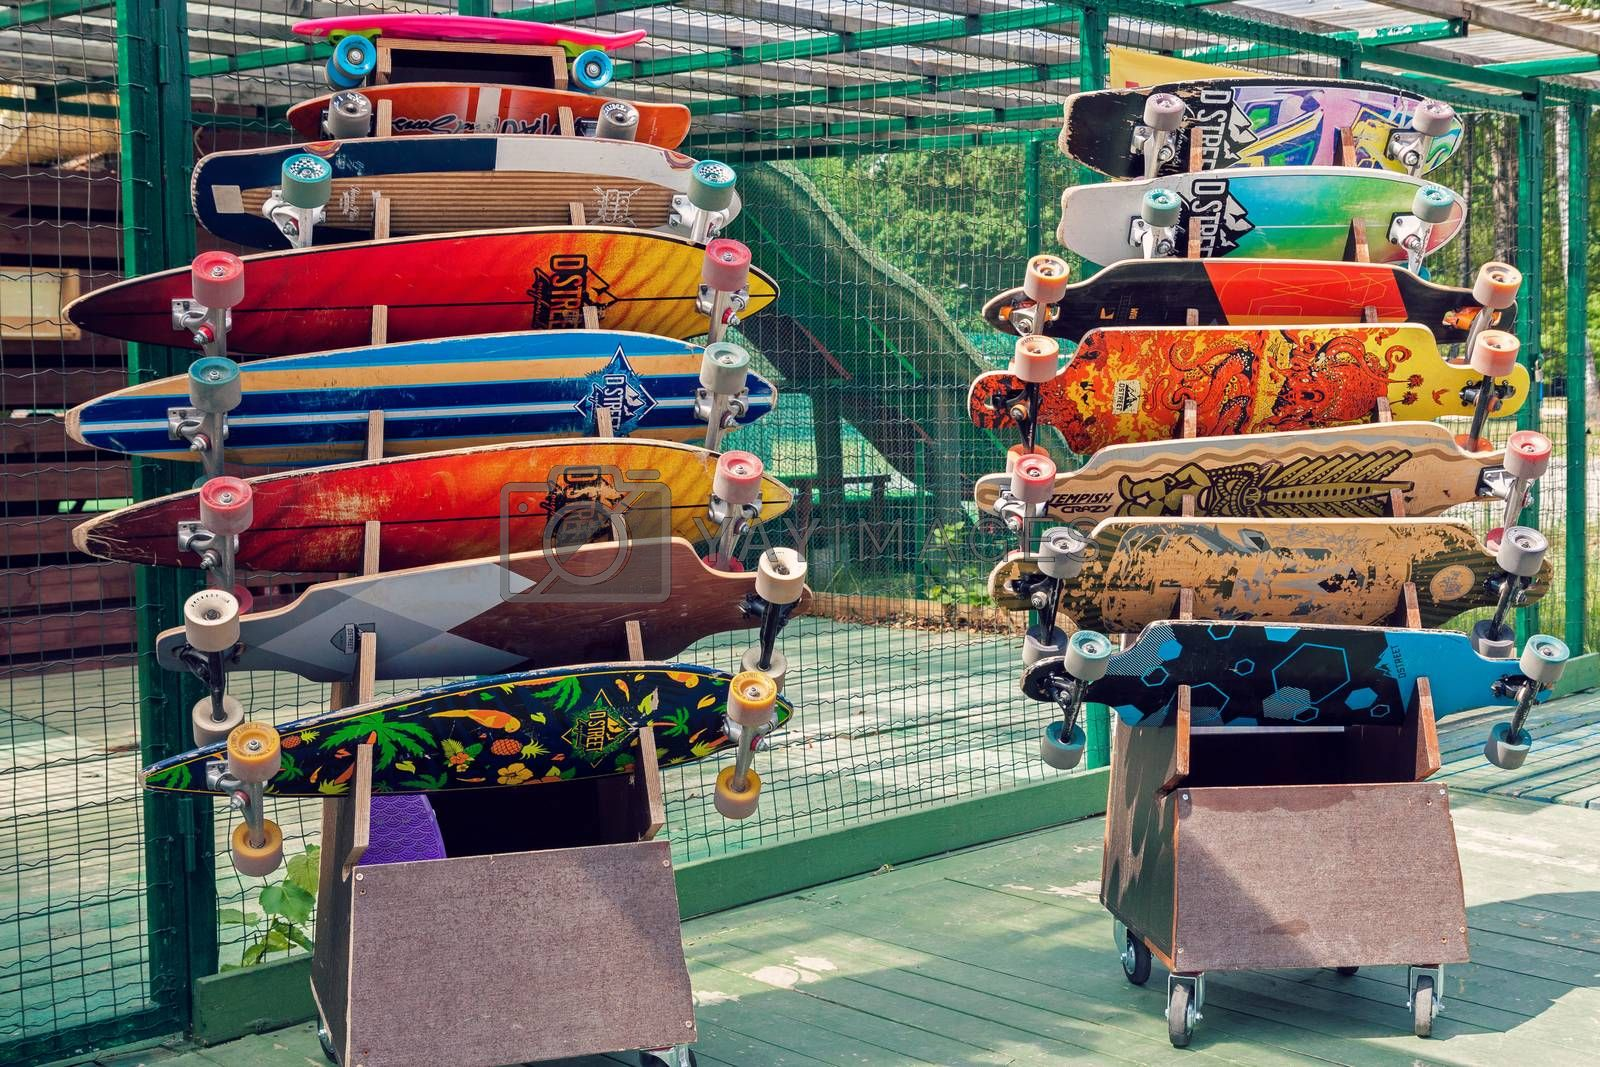 VILNIUS, LITHUANIA - MAY 29, 2016: Colorful longboards and skateboards for rent in skateboarding park outdoors in Vilnius, Lithuania.